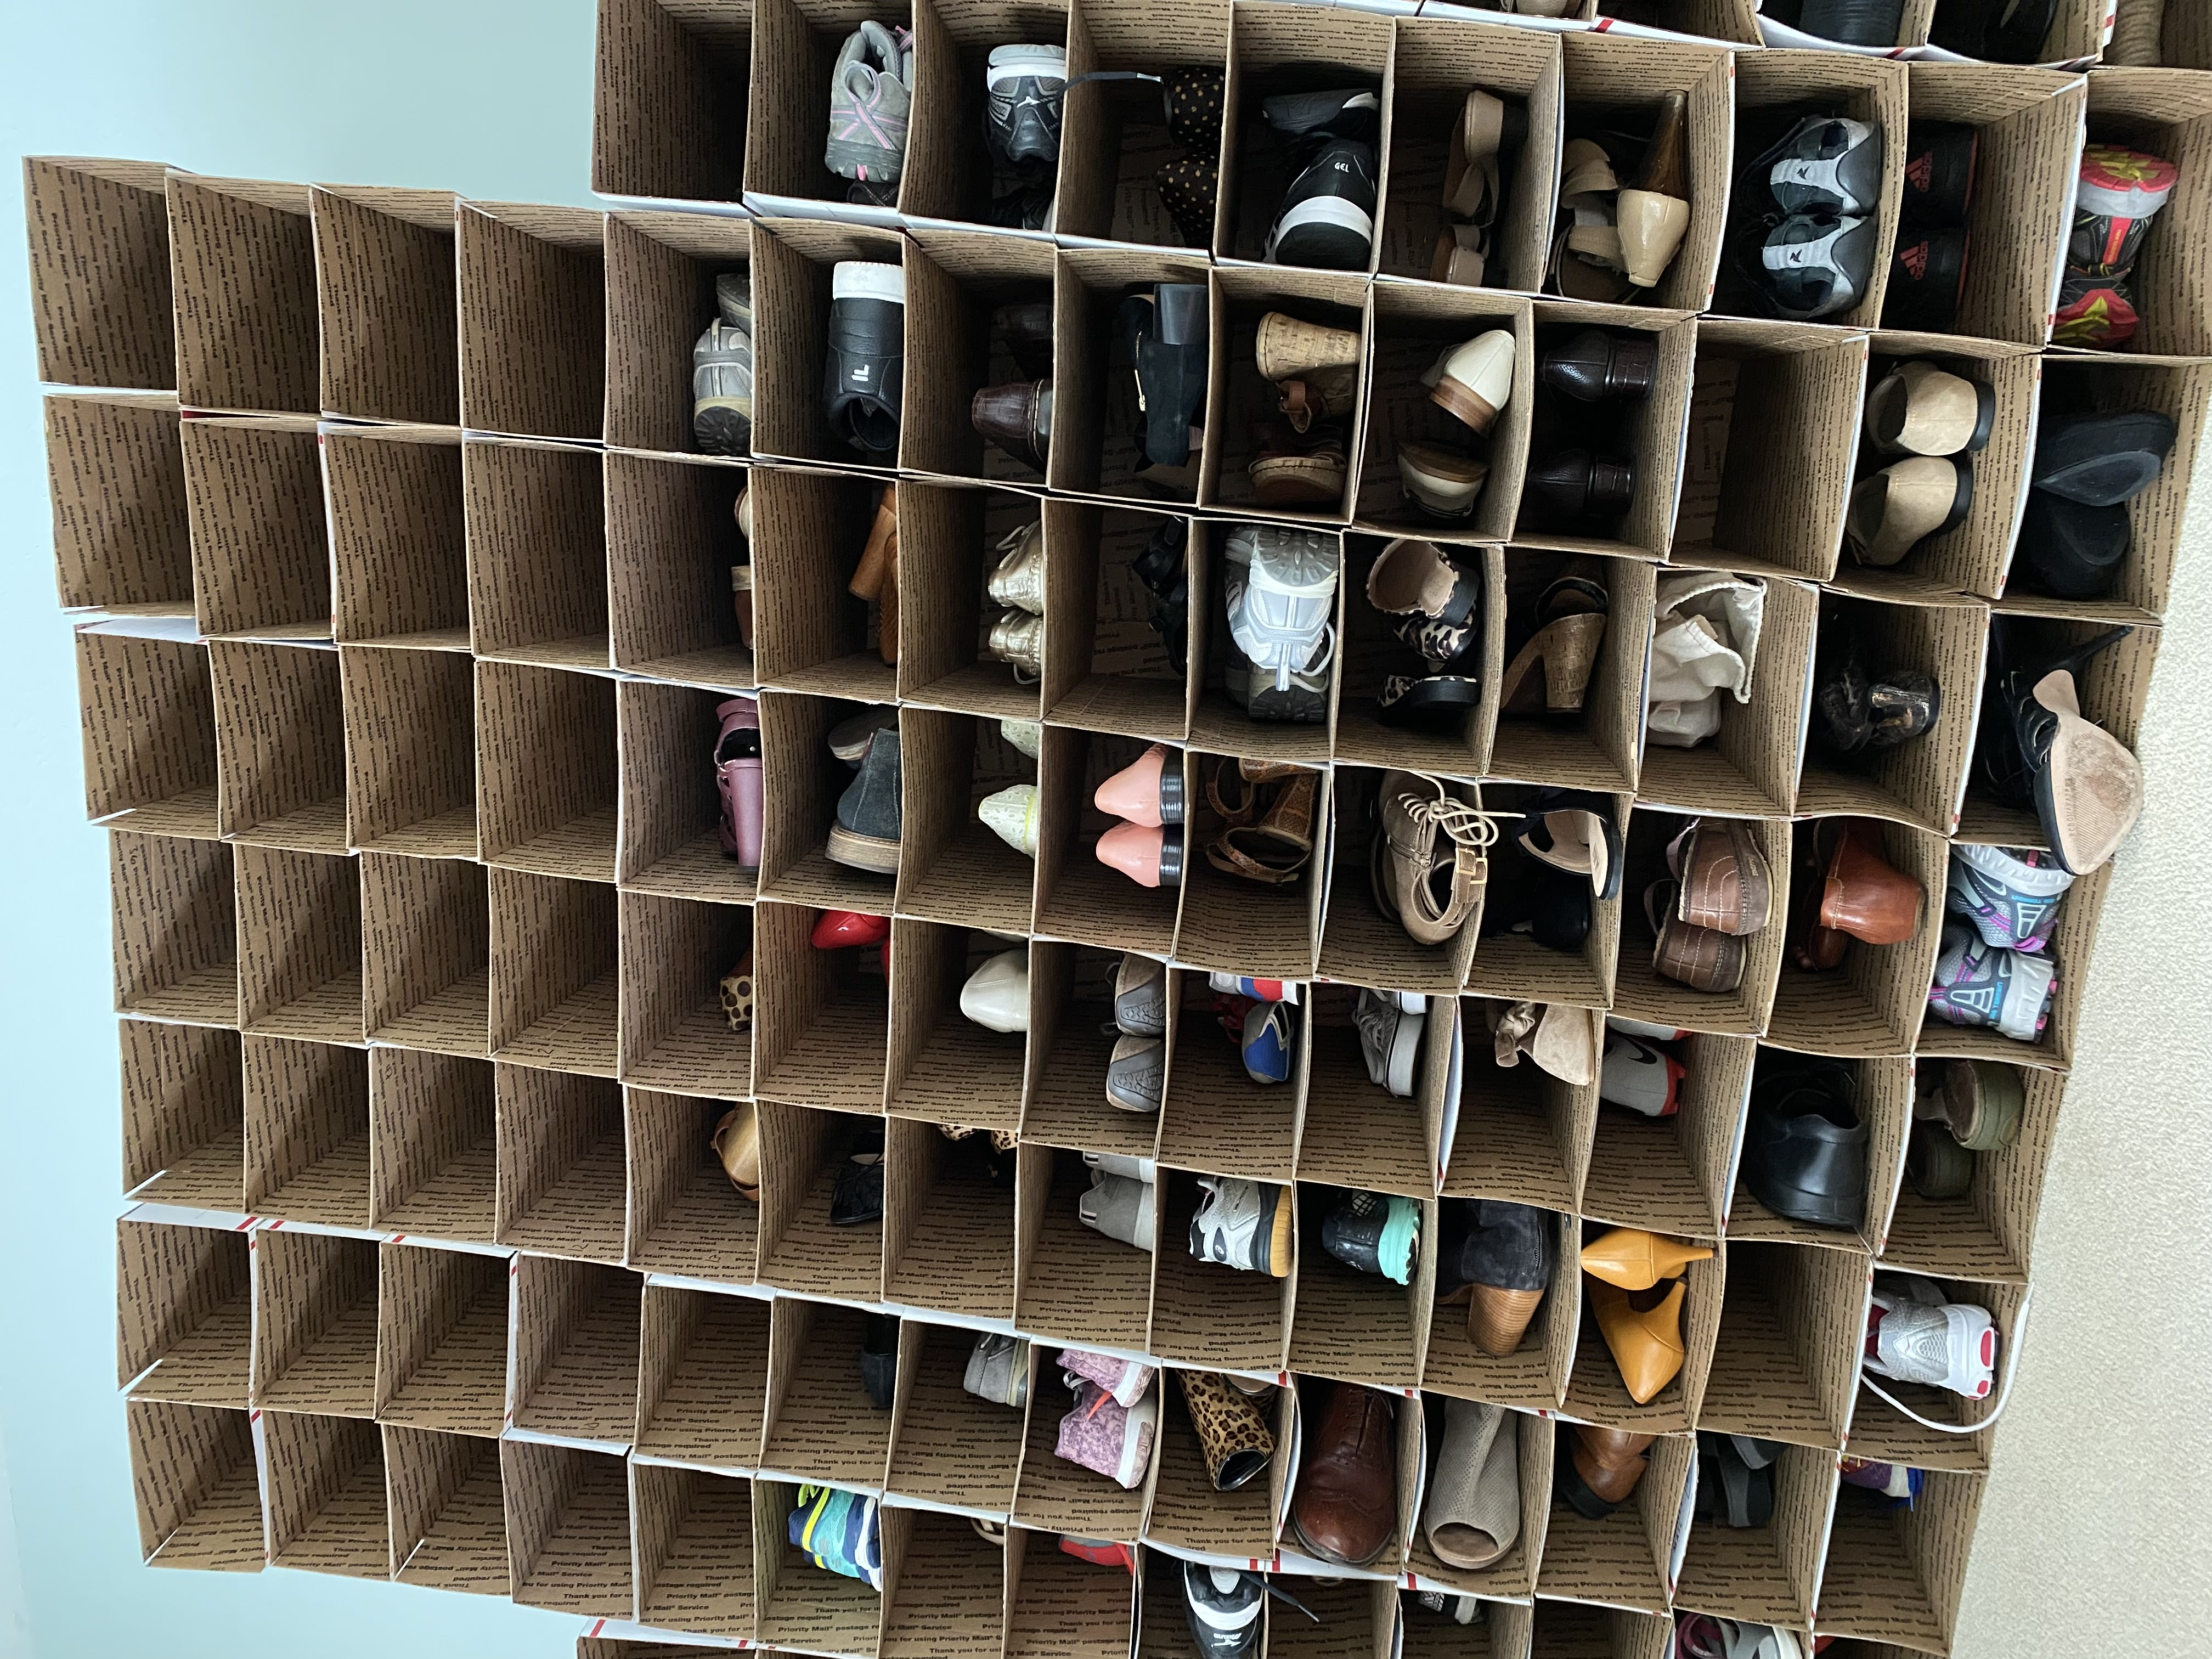 Storing shoes for reselling